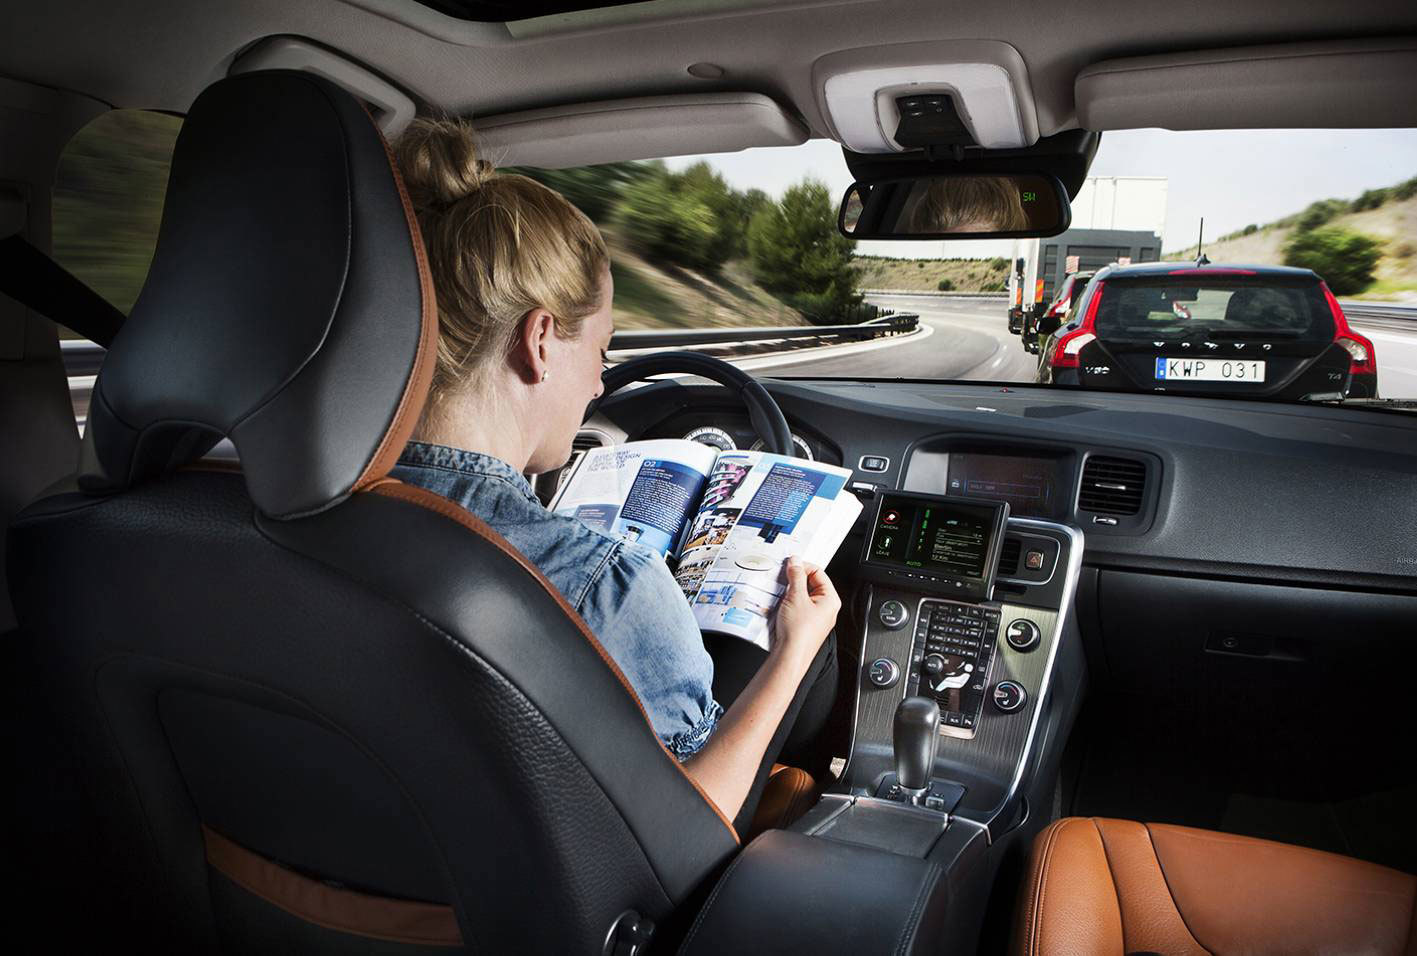 analysis will self driving cars